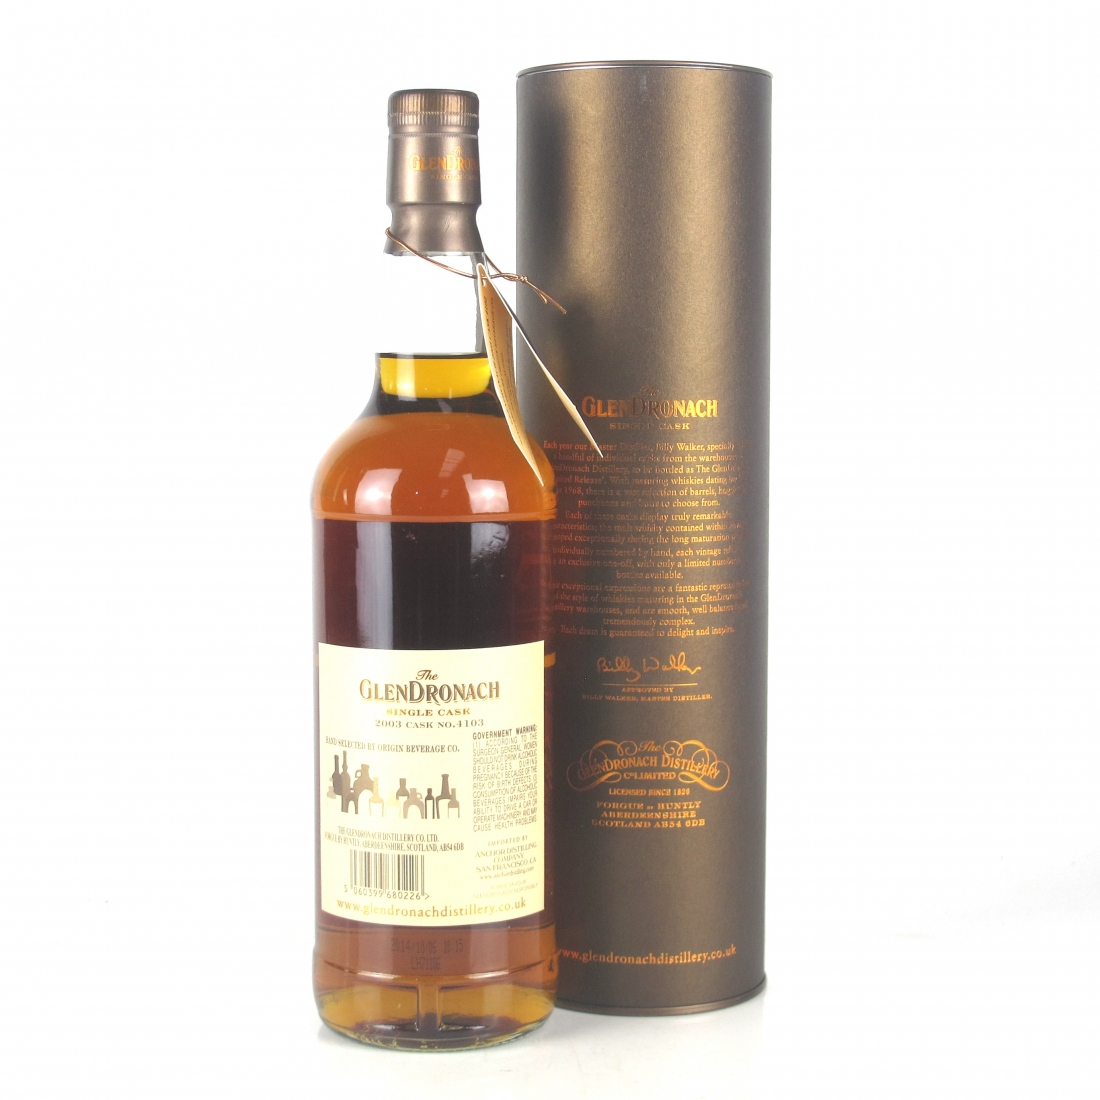 Glendronach 2003 Single Cask 11 Year Old #4103 75cl / Origin Beverage Co. US Exclusive